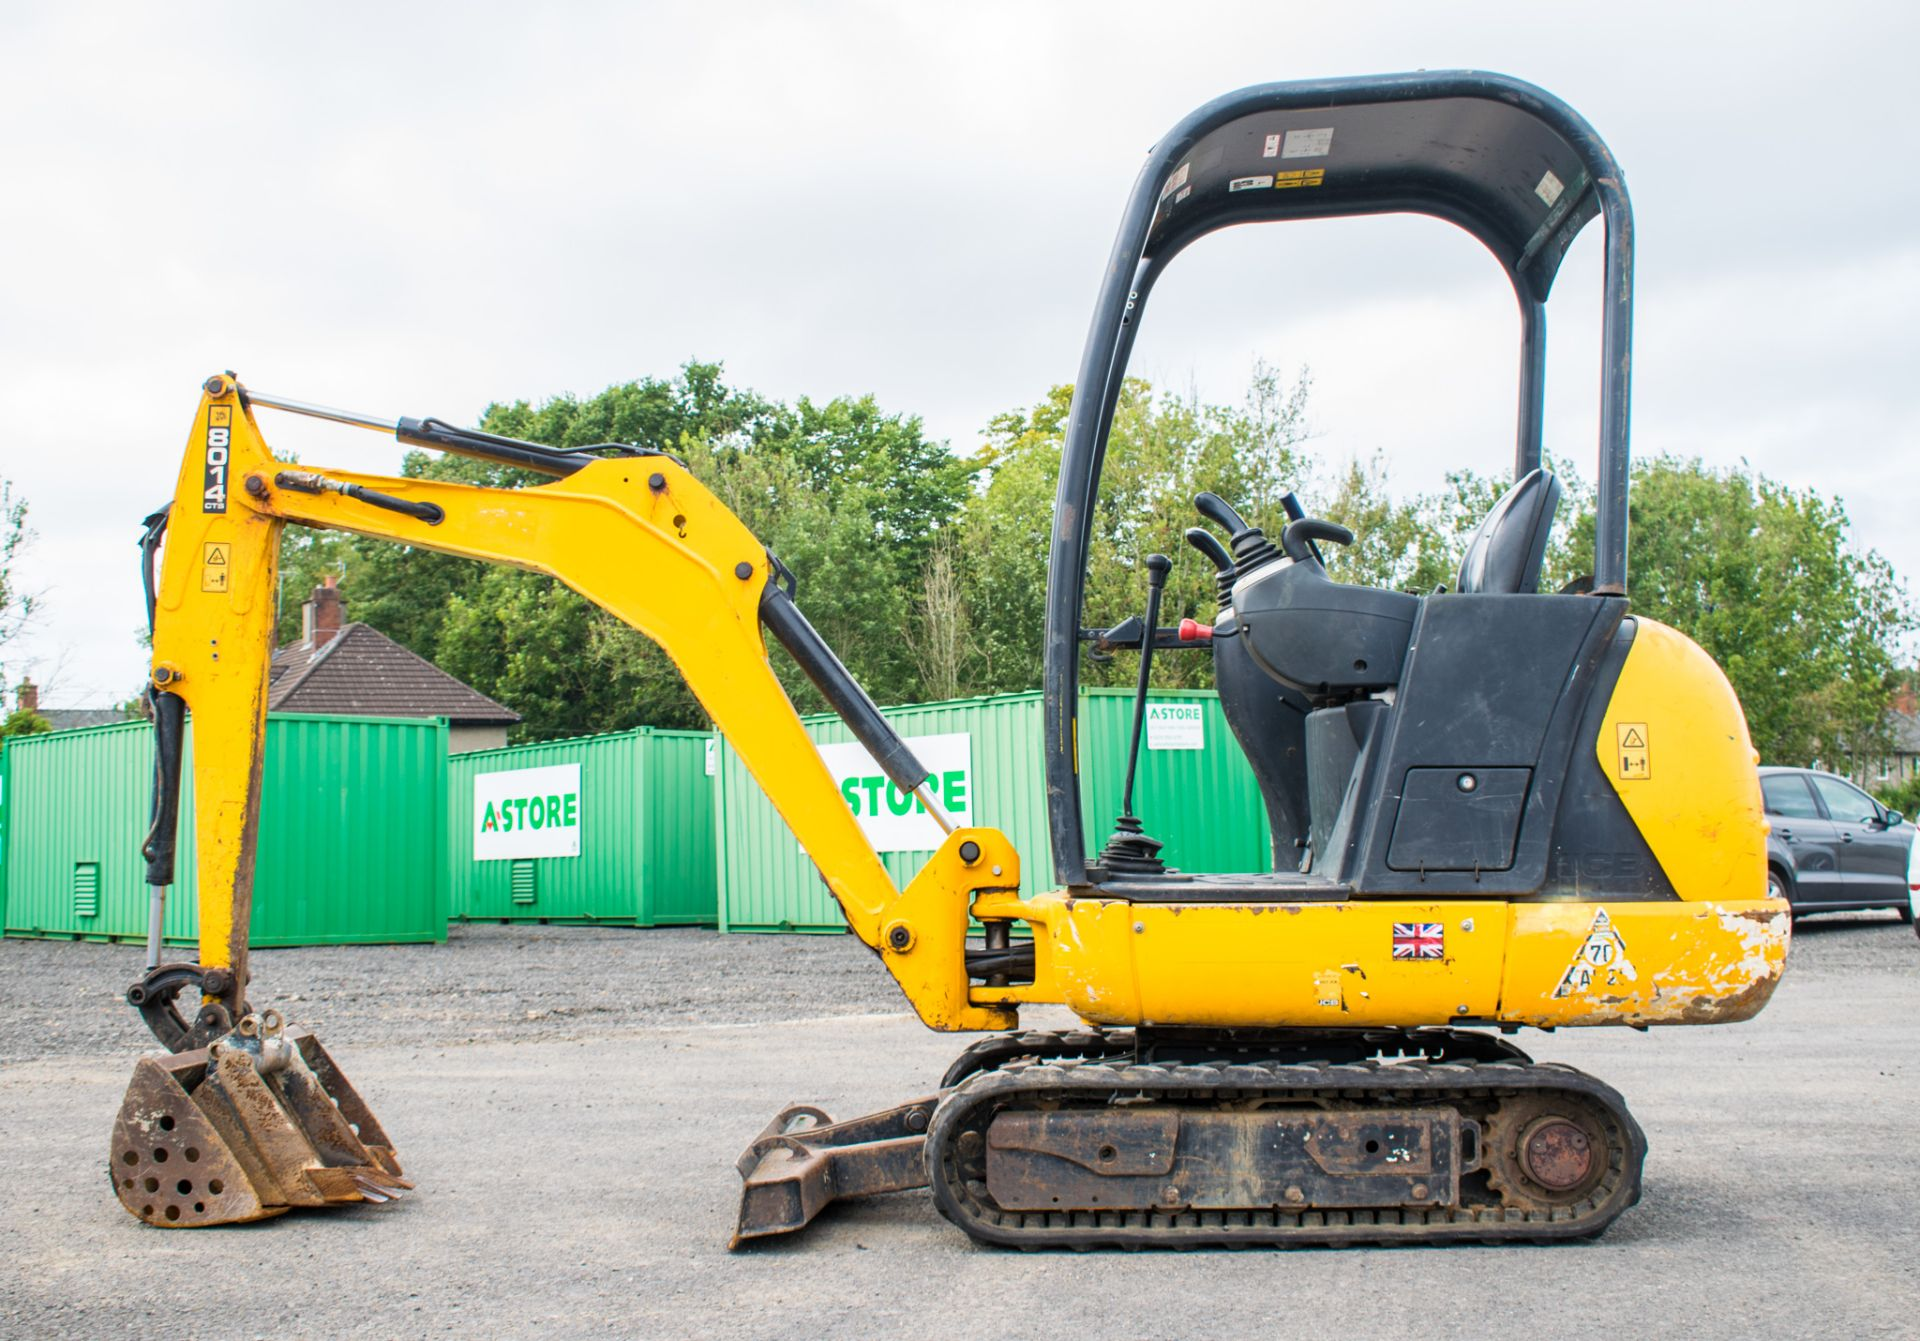 Lot 19 - JCB 8014 CTS 1.4 tonne rubber tacked mini excavator Year: 2014 S/N: 70495 Recorded Hour: 1706